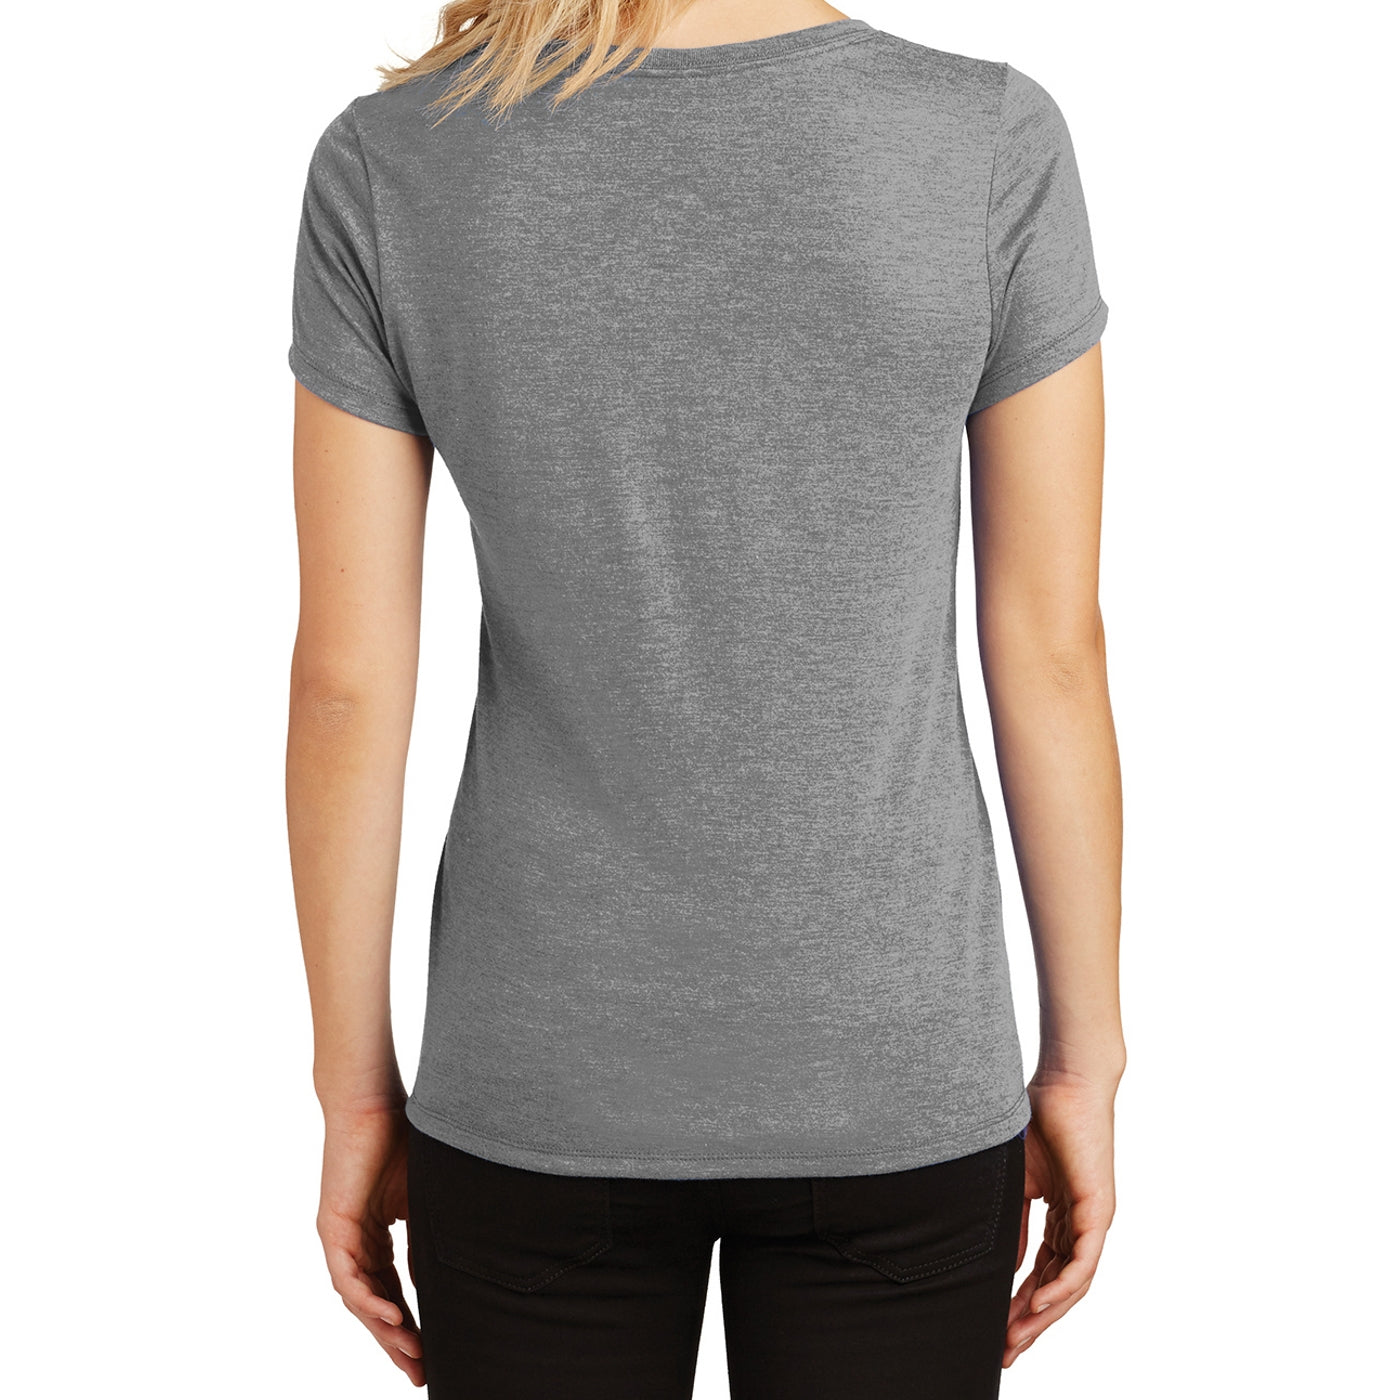 Women's Perfect Tri V-Neck Tee - Grey Frost - Back